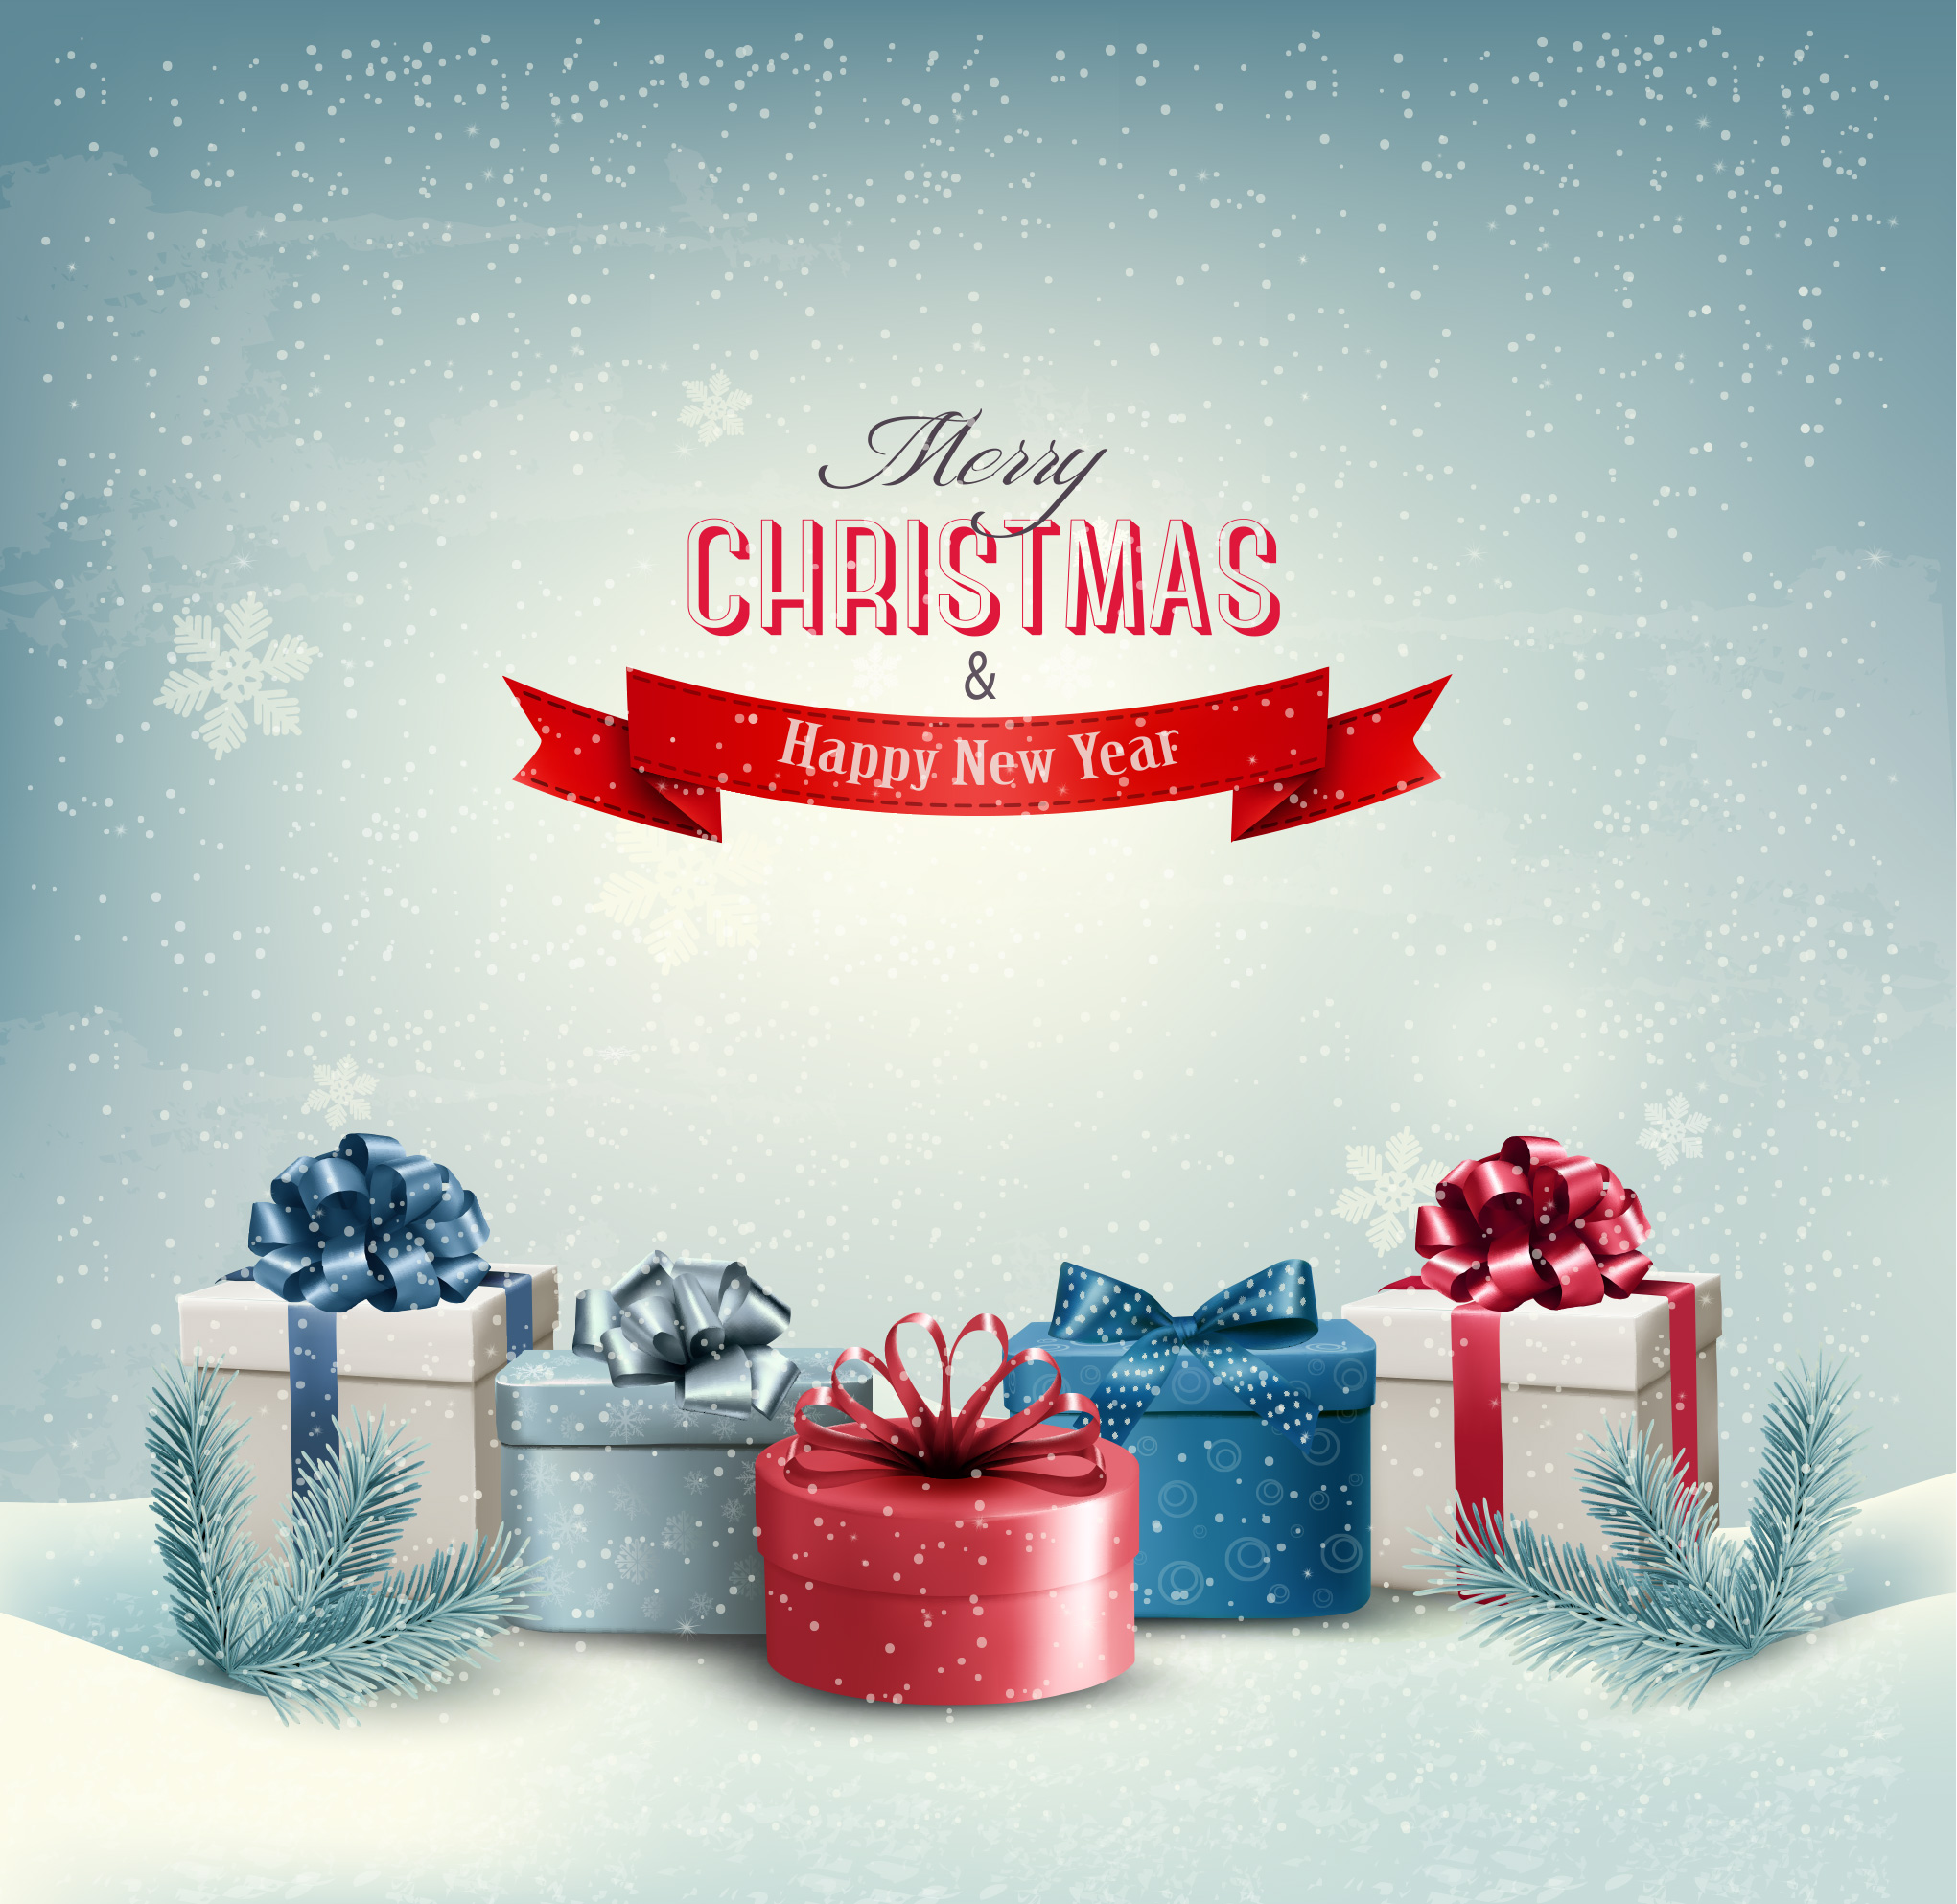 Merry Christmas, Happy Holidays And Happy New Year